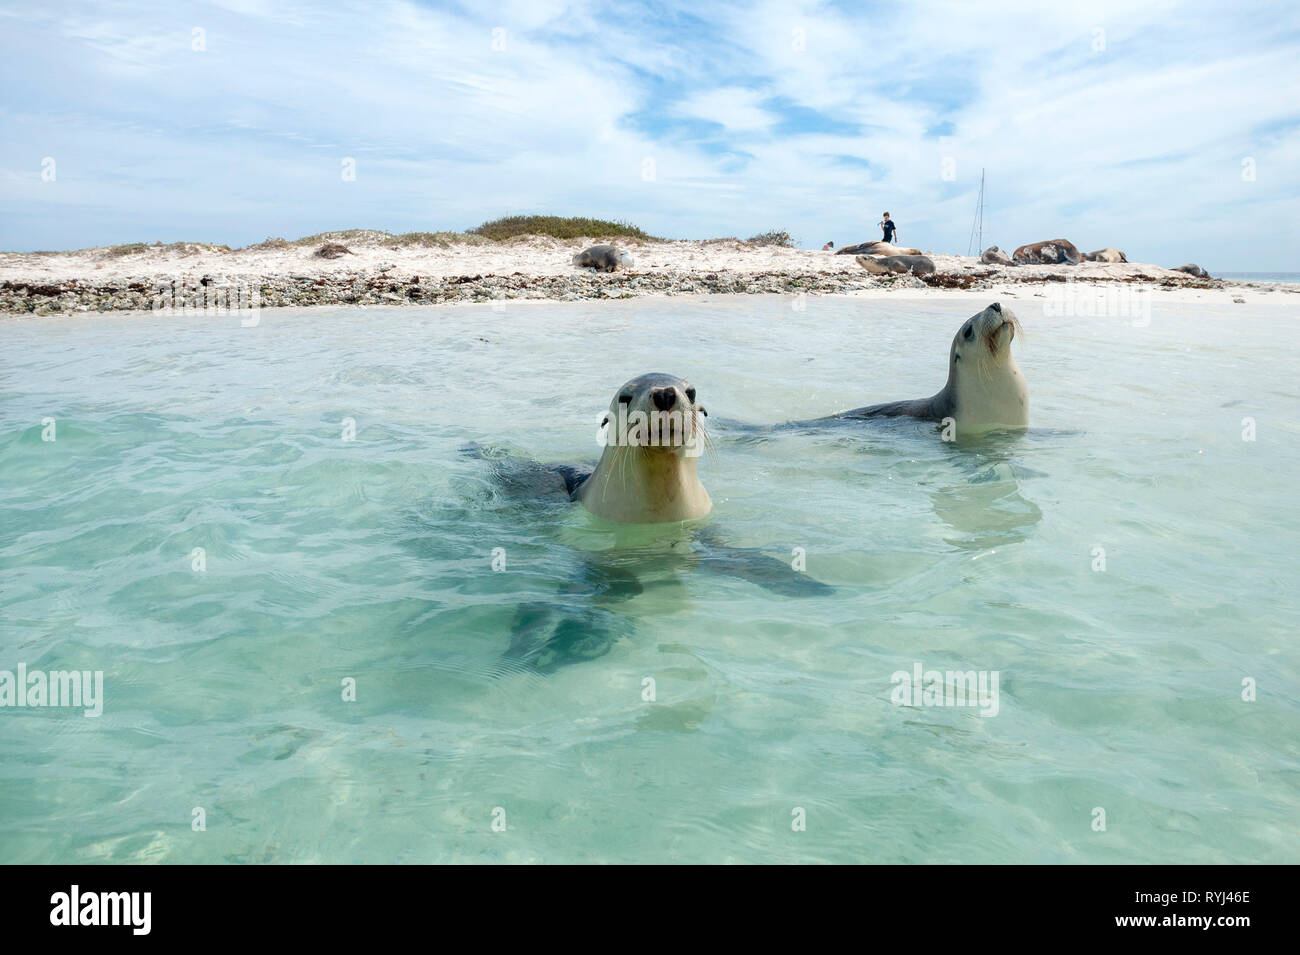 White Bank (also called Seal Island) is home to a family of Australian Sea Lions in the Easter group of the Houtman Abrolhos. The Houtman Abrolhos isl Stock Photo